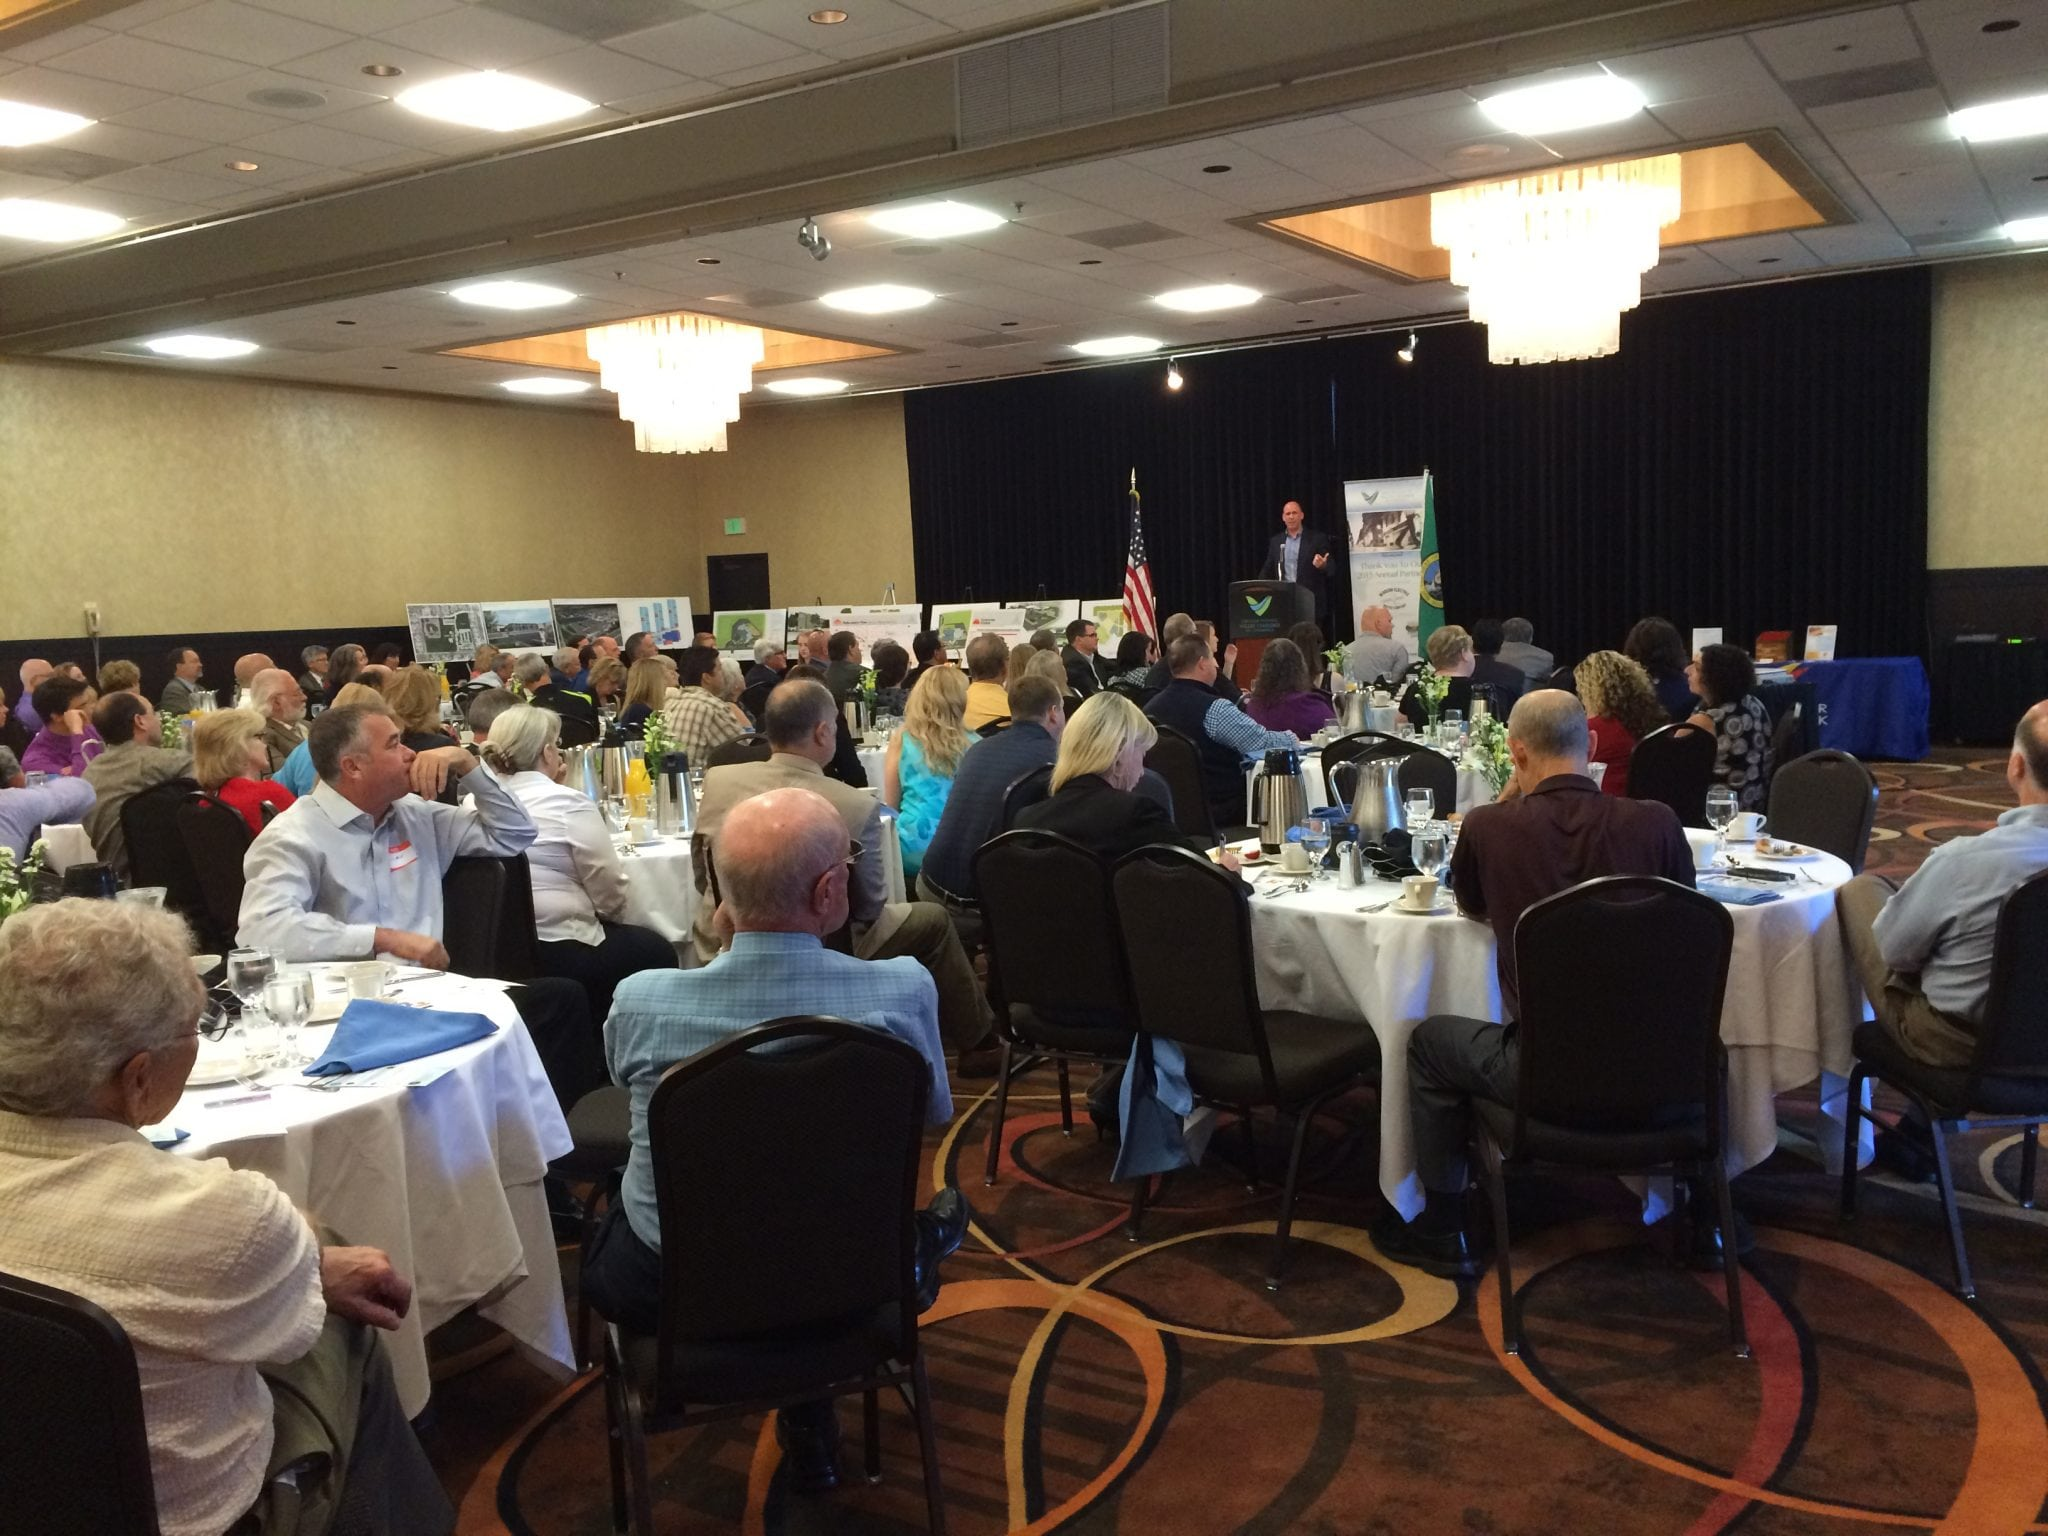 Attendees at Business Connections Breakfast hear from John Dickson, COO of Spokane County.